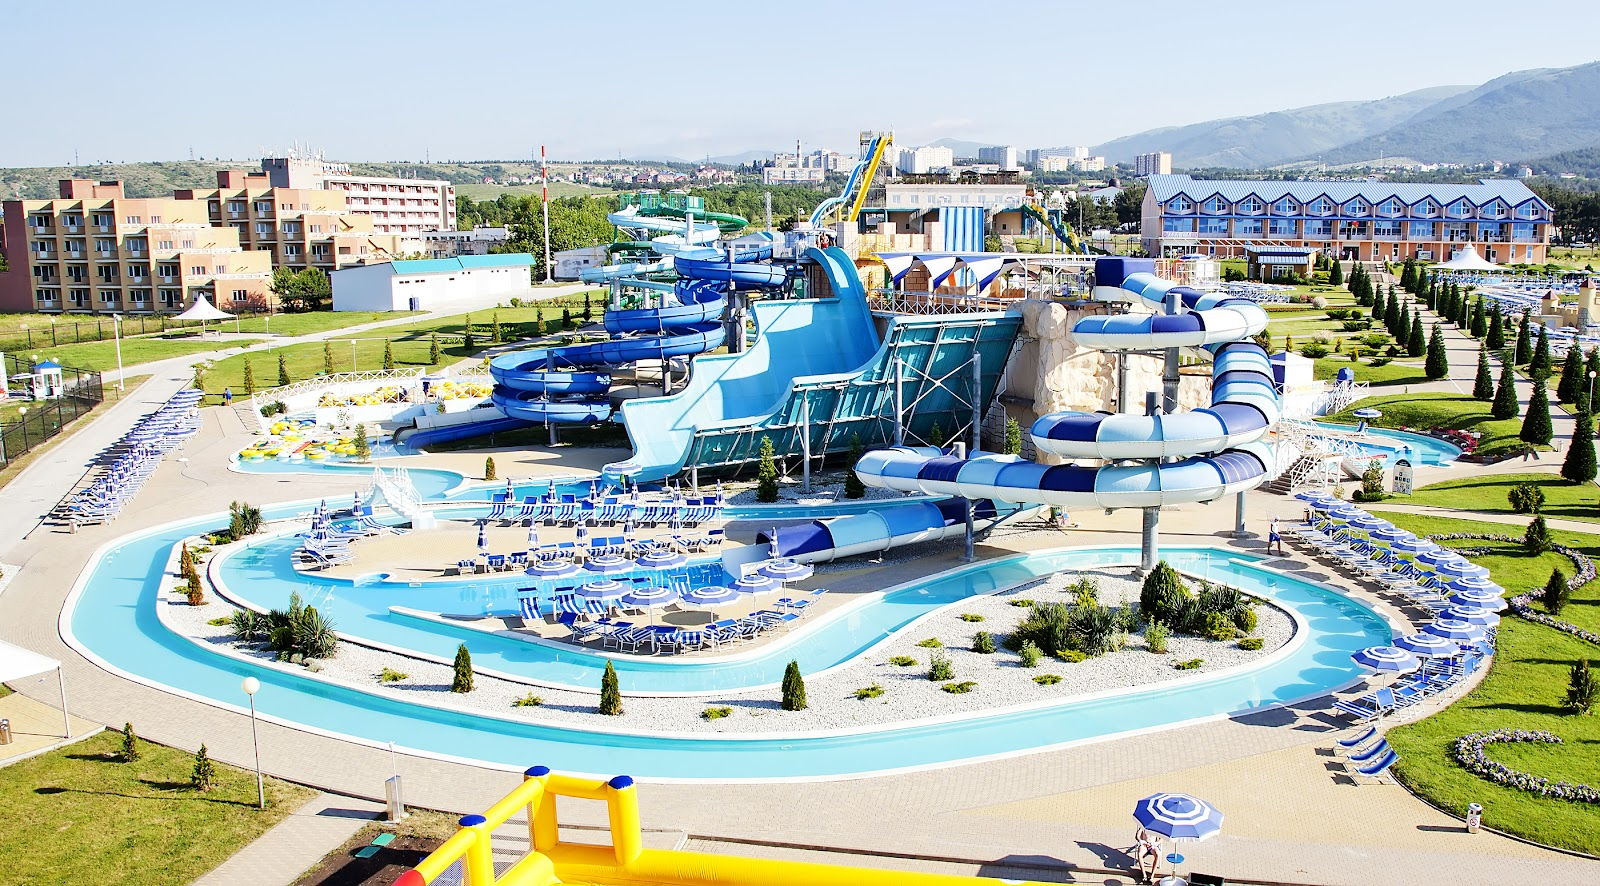 water parks types of parks in the us